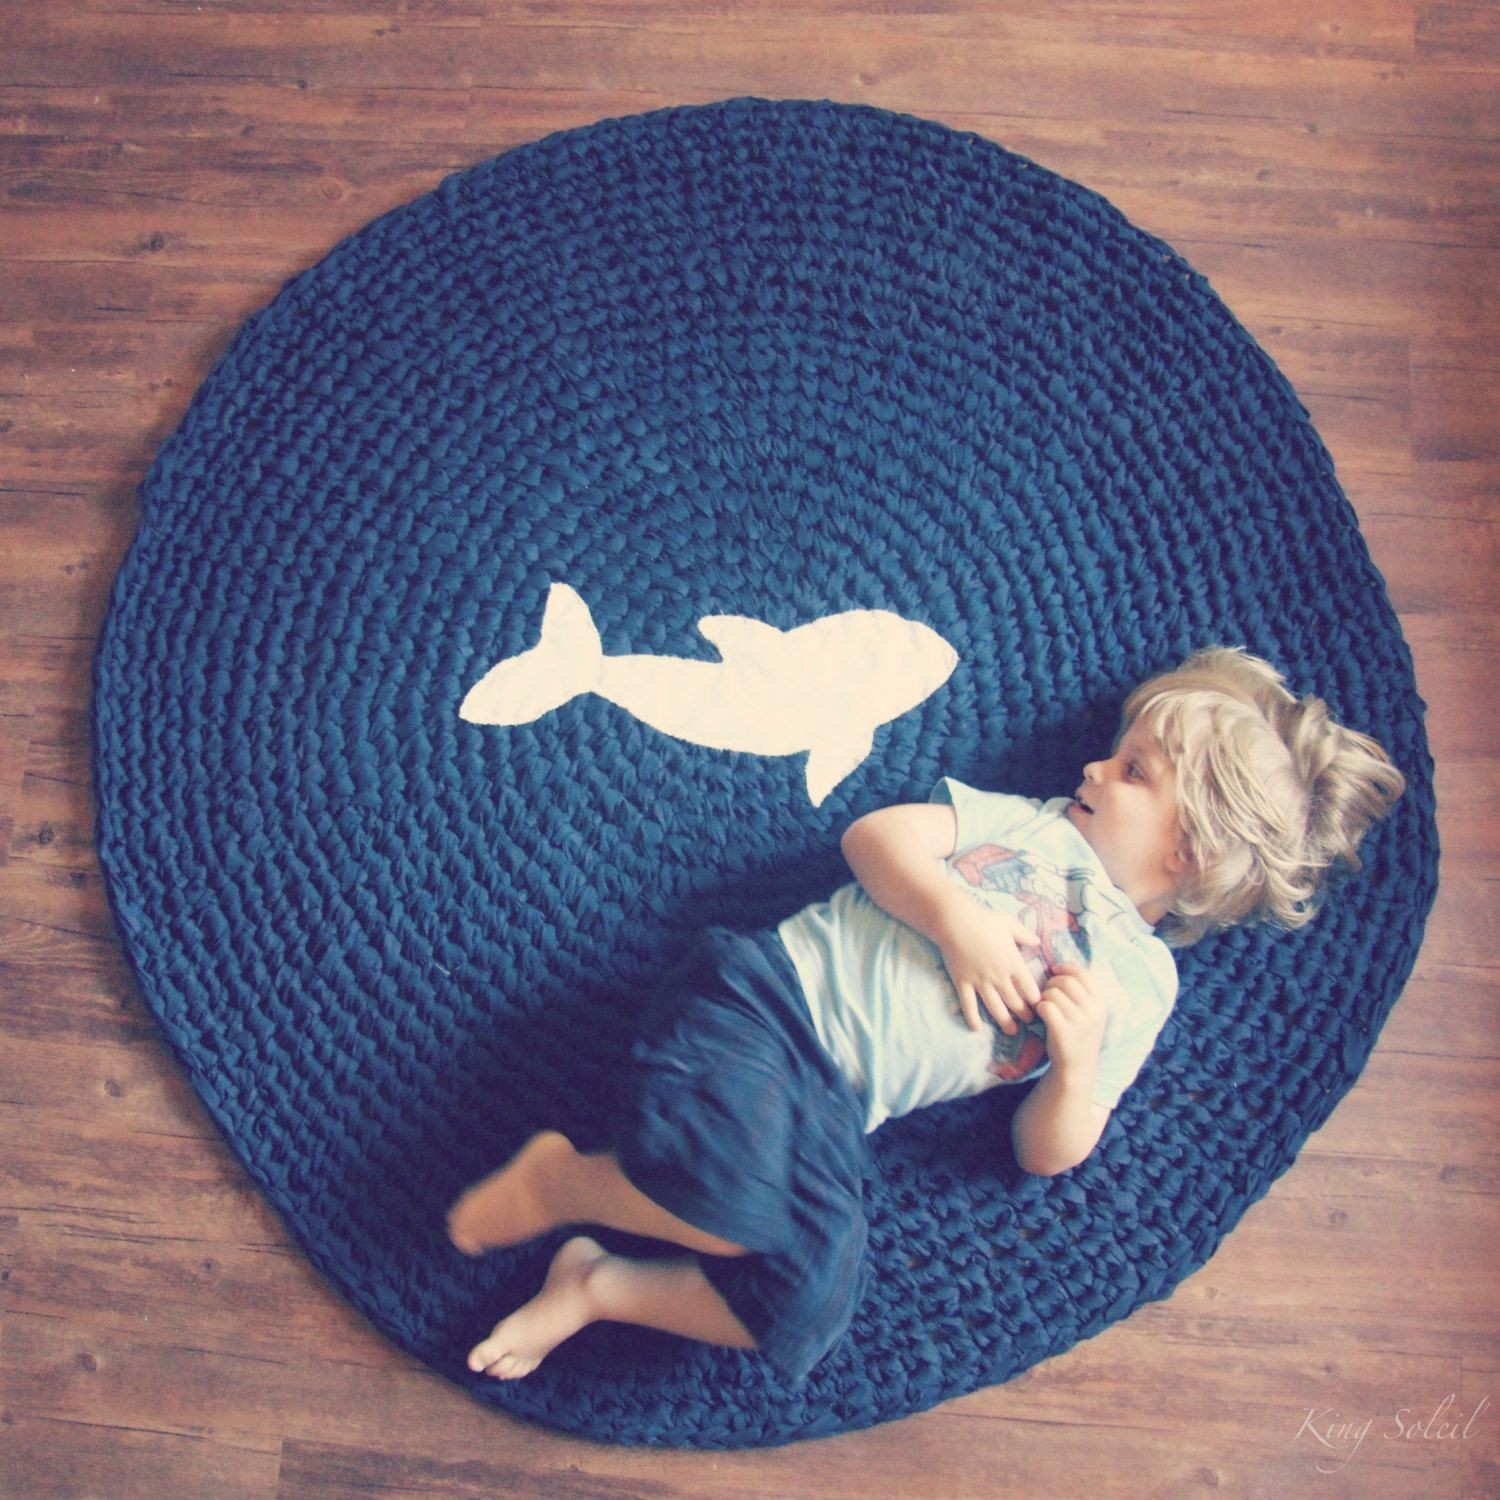 Crochet Whale Rug Nautical Navy Blue With White Lique Silhouette Cotton Round Play Mat